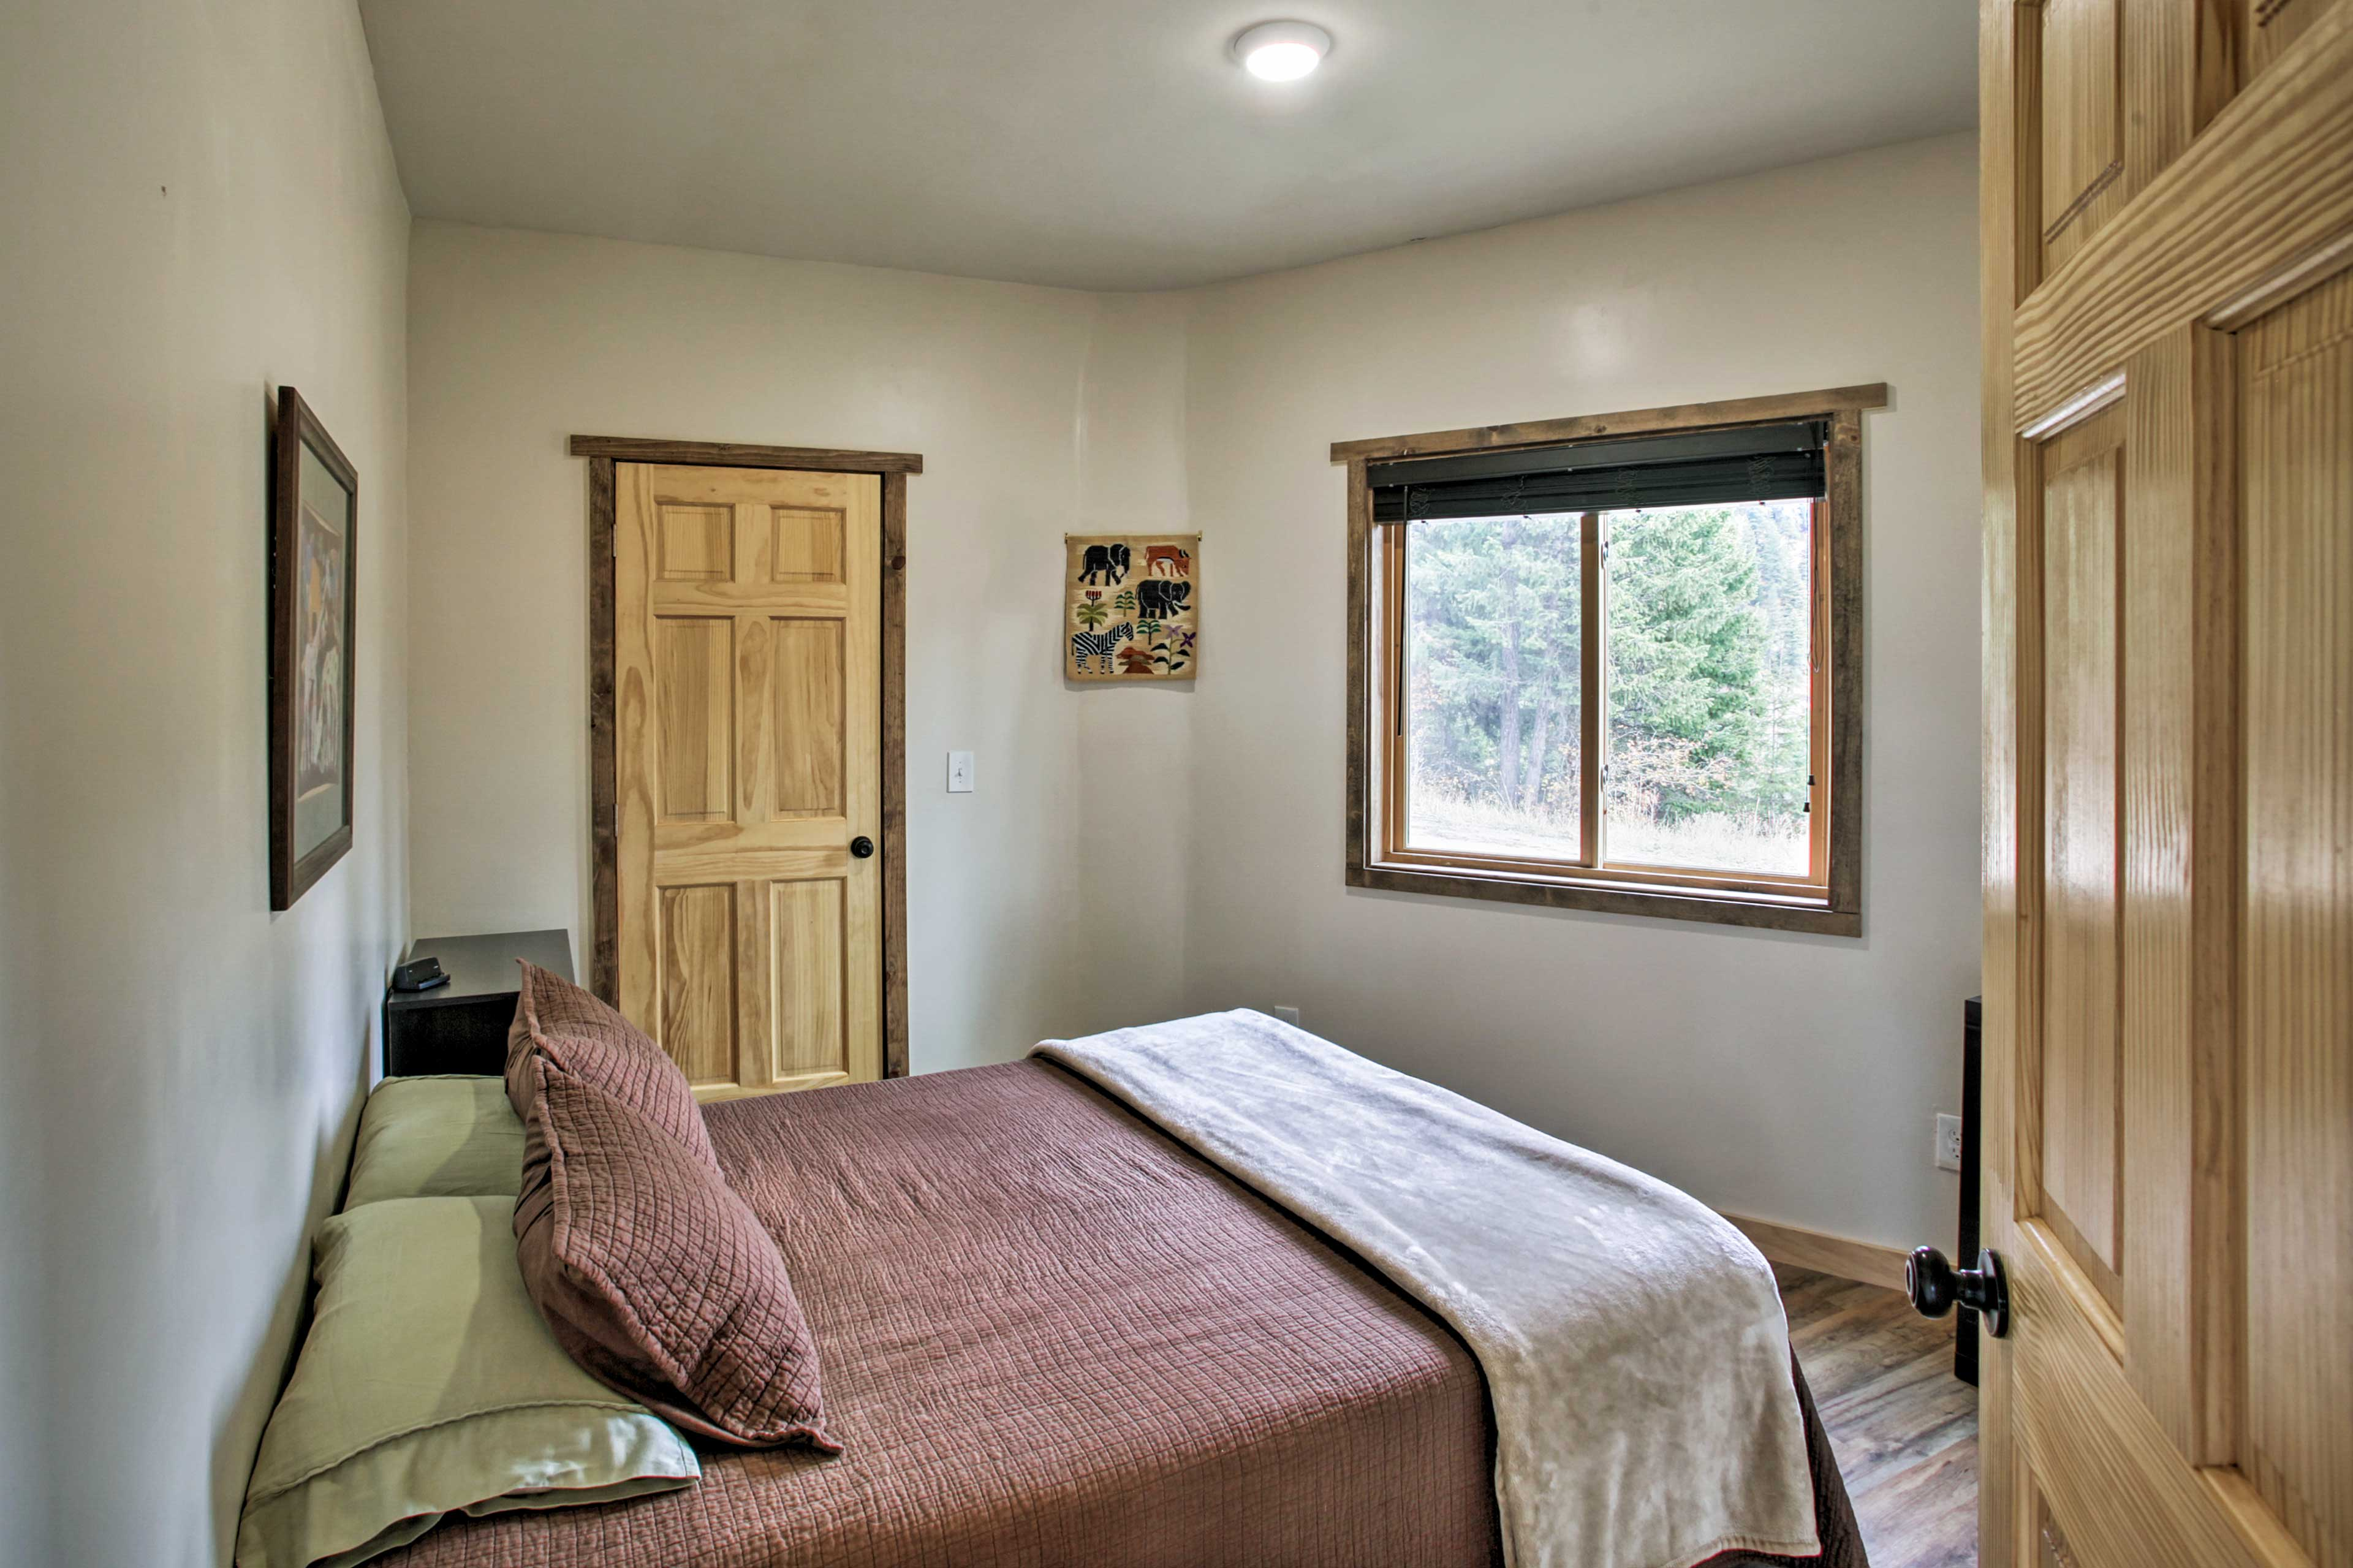 The third bedroom is outfitted with a queen bed.